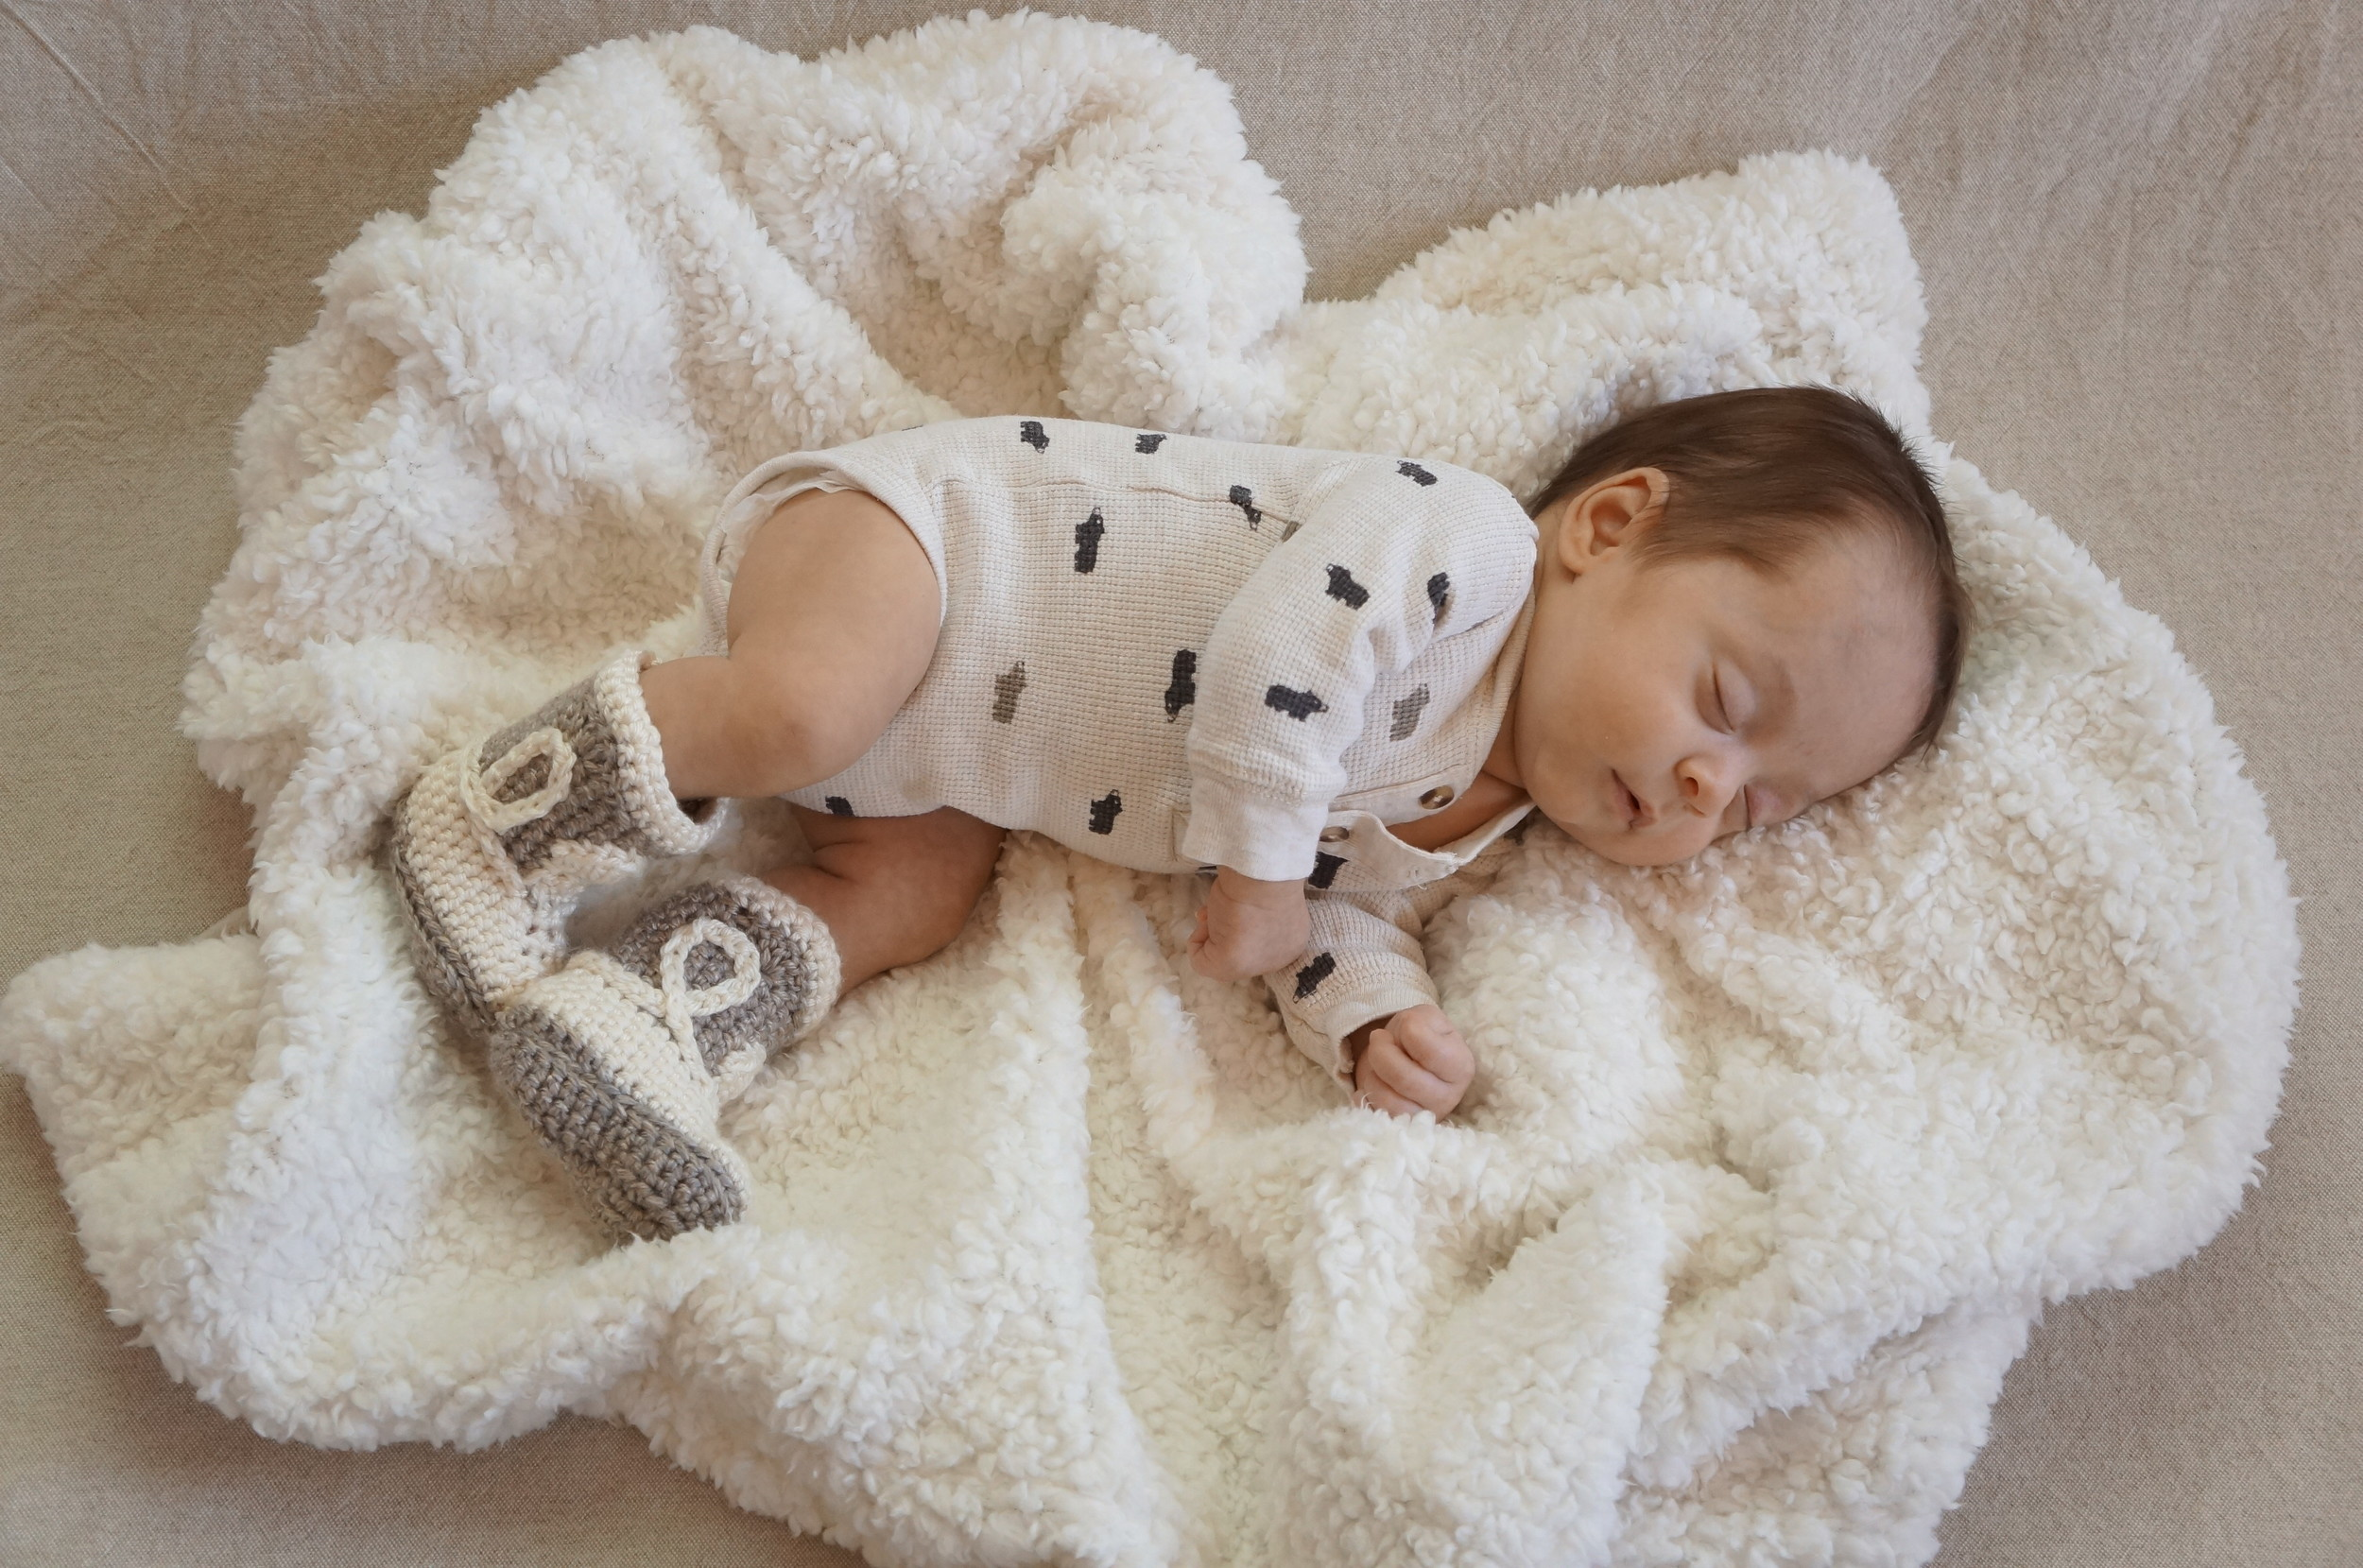 Infant photography tips